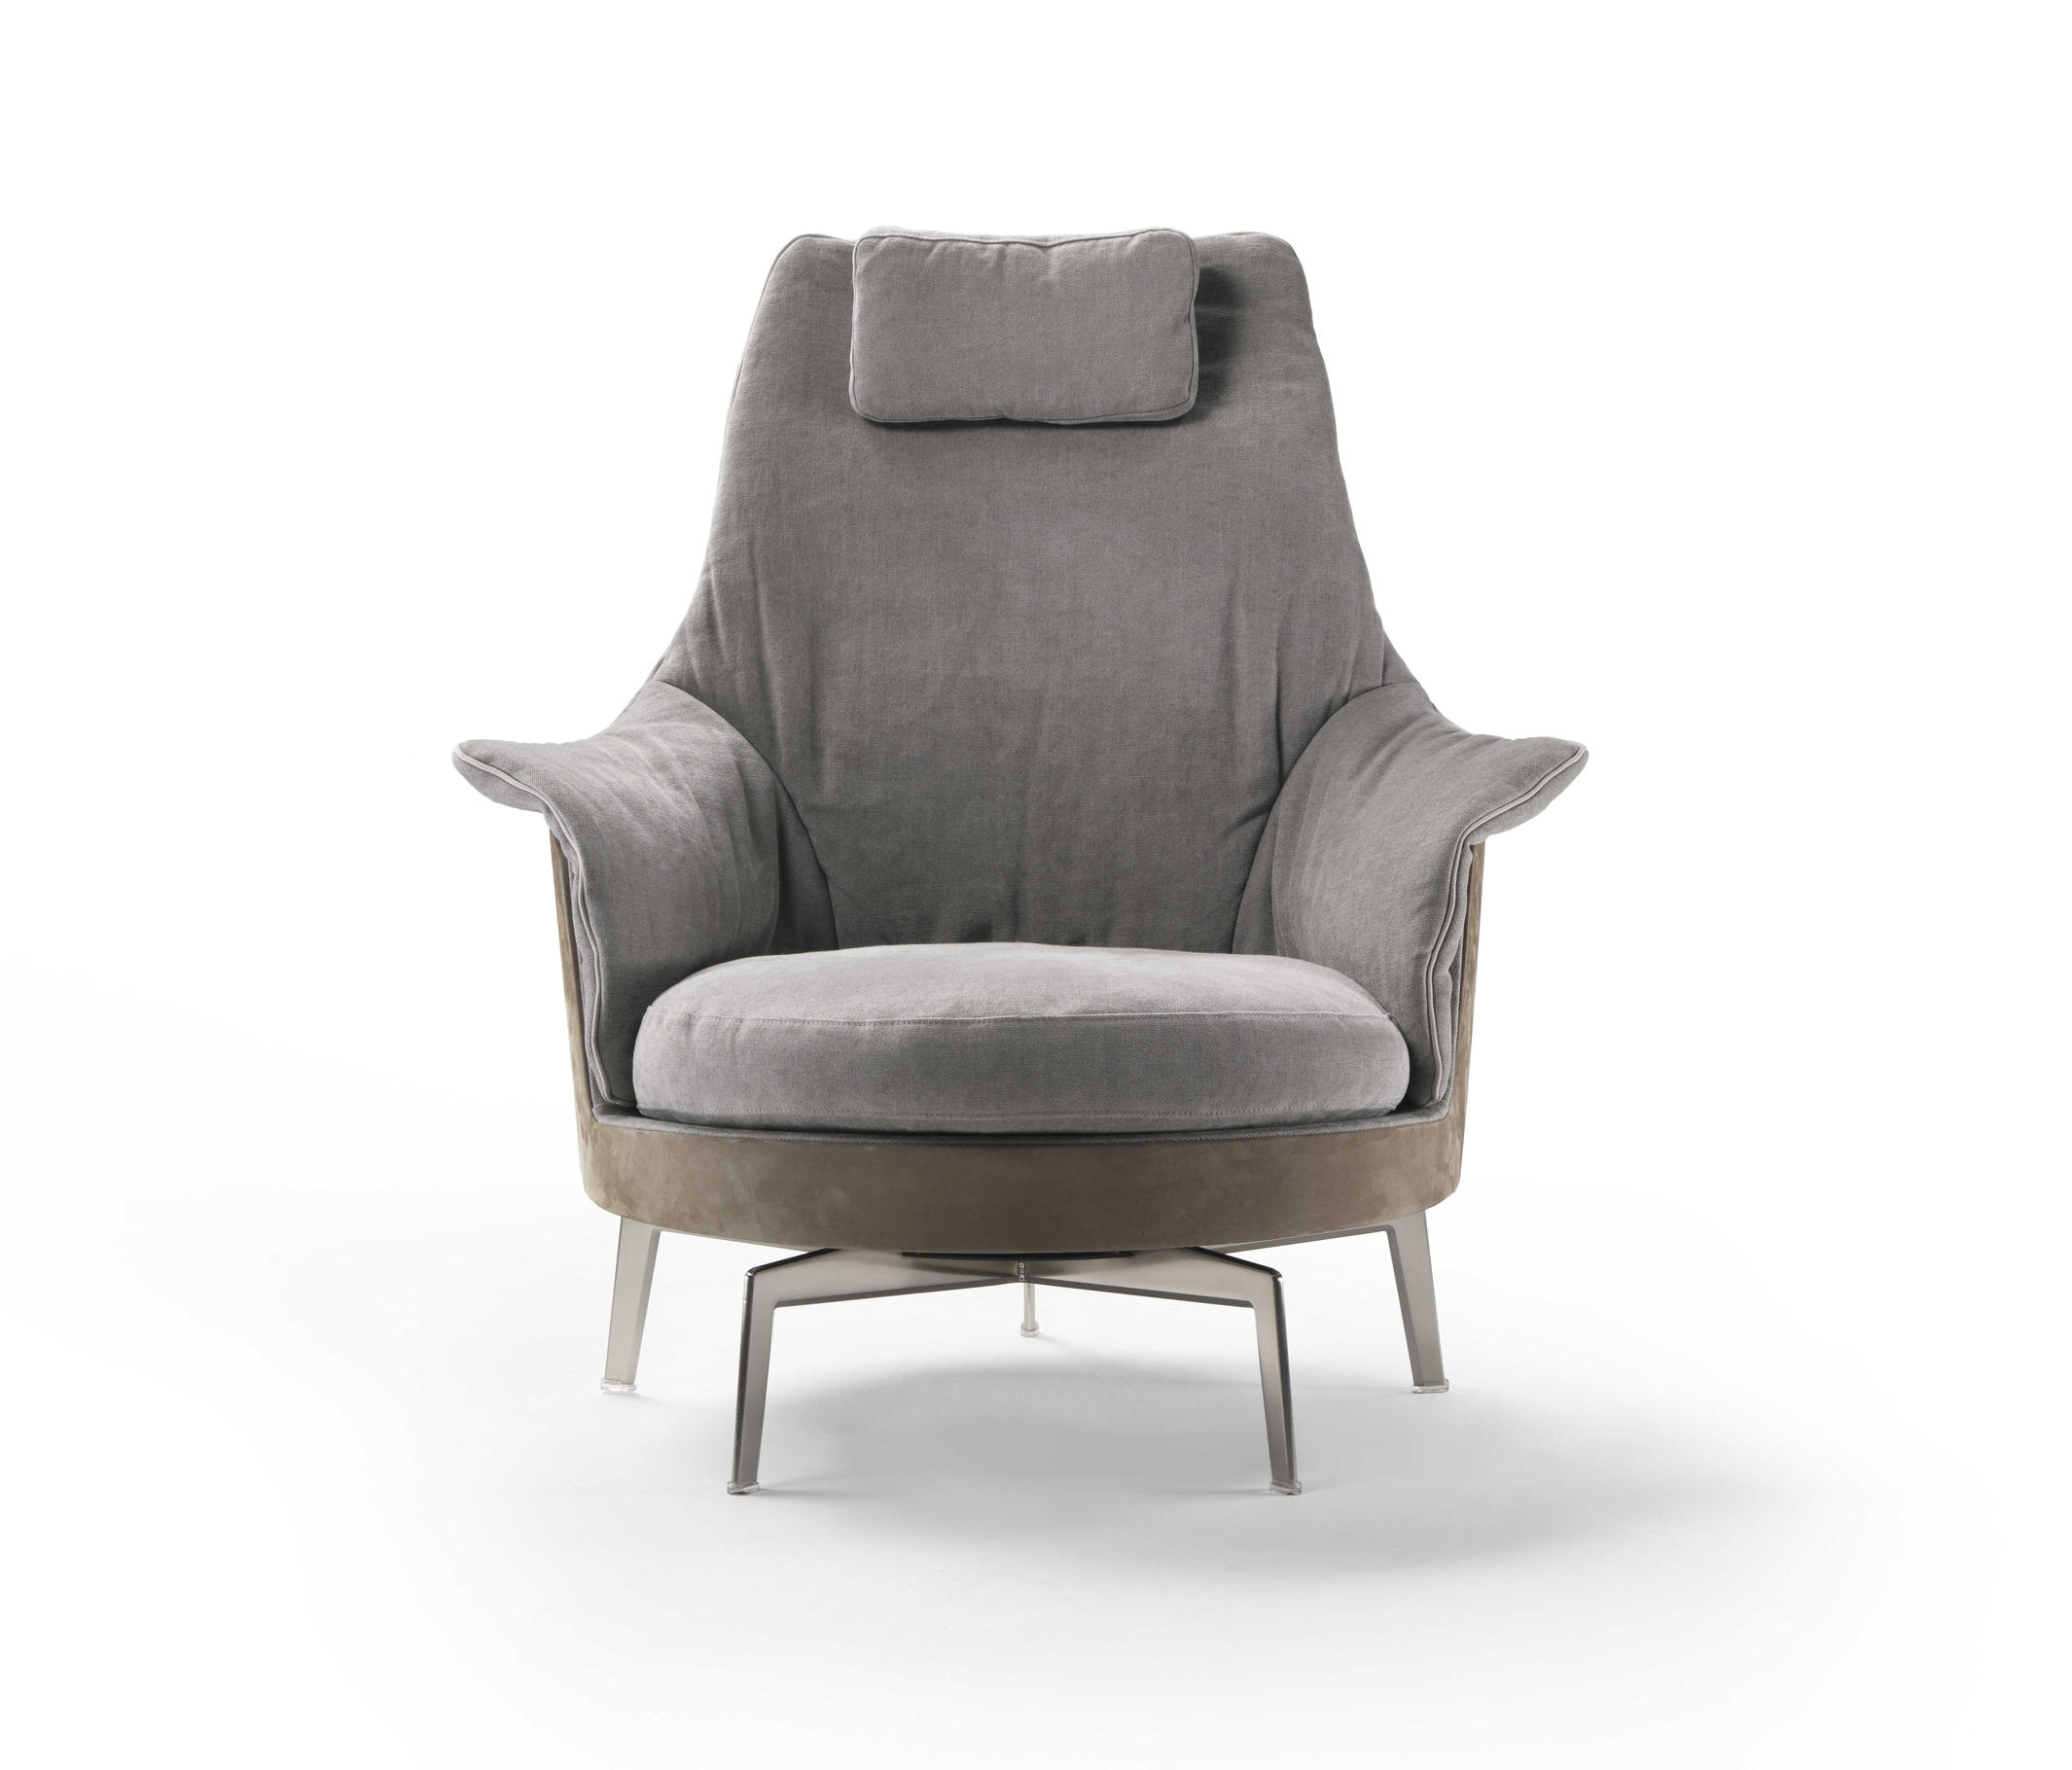 GUSCIOALTO LIGHT ARMCHAIR Lounge chairs from Flexform